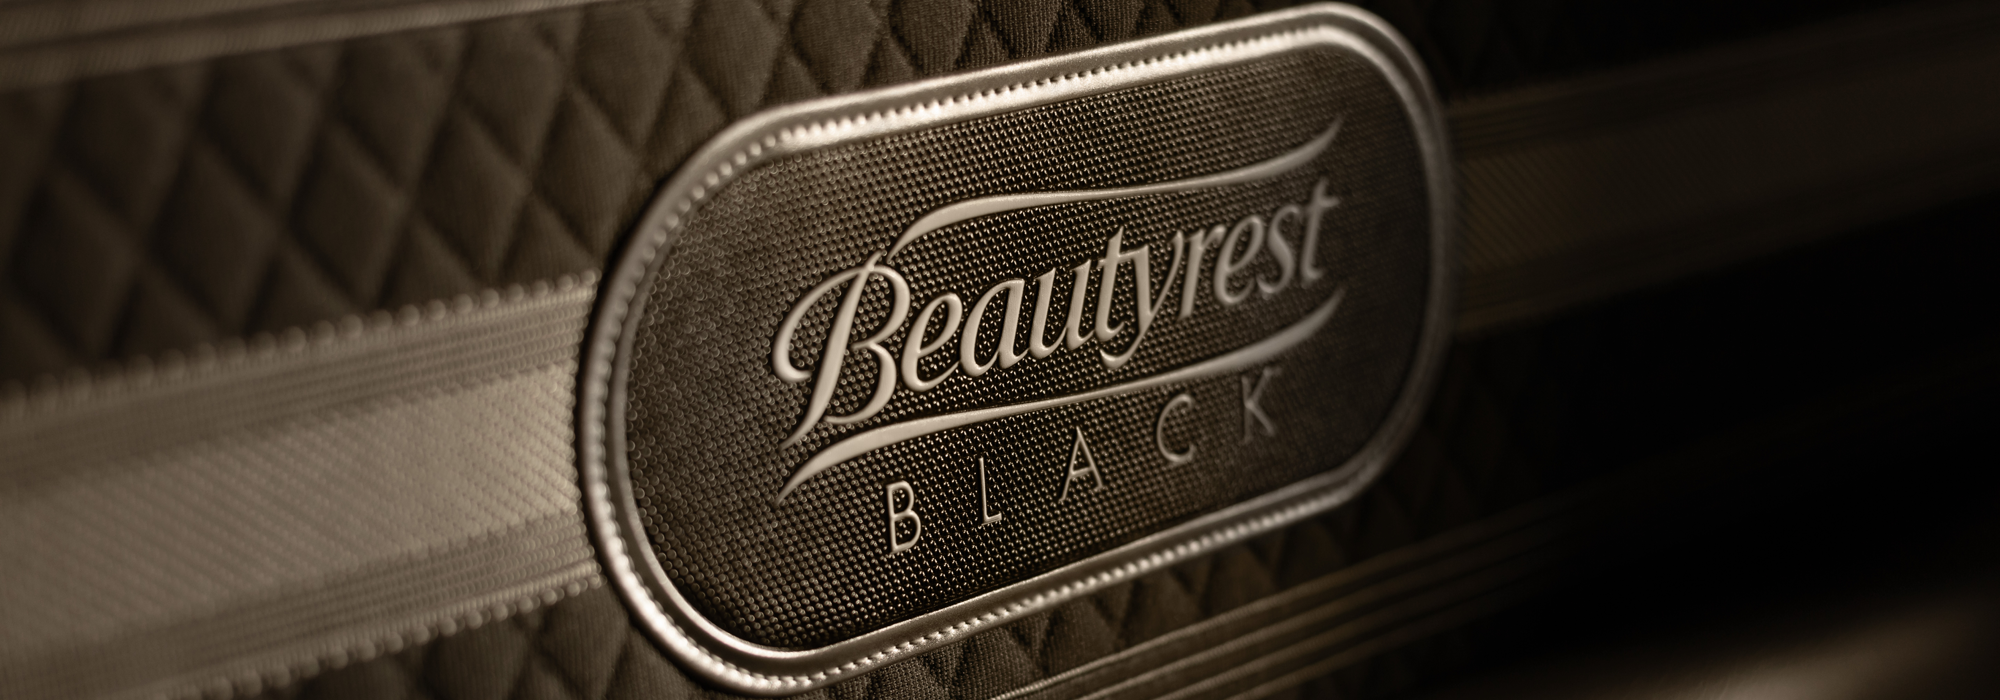 Beautyrest black Black Label Beautyrest Black Dream In Black Rotmans Beautyrest Black At Rotmans Worcester Boston Ma Providence Ri